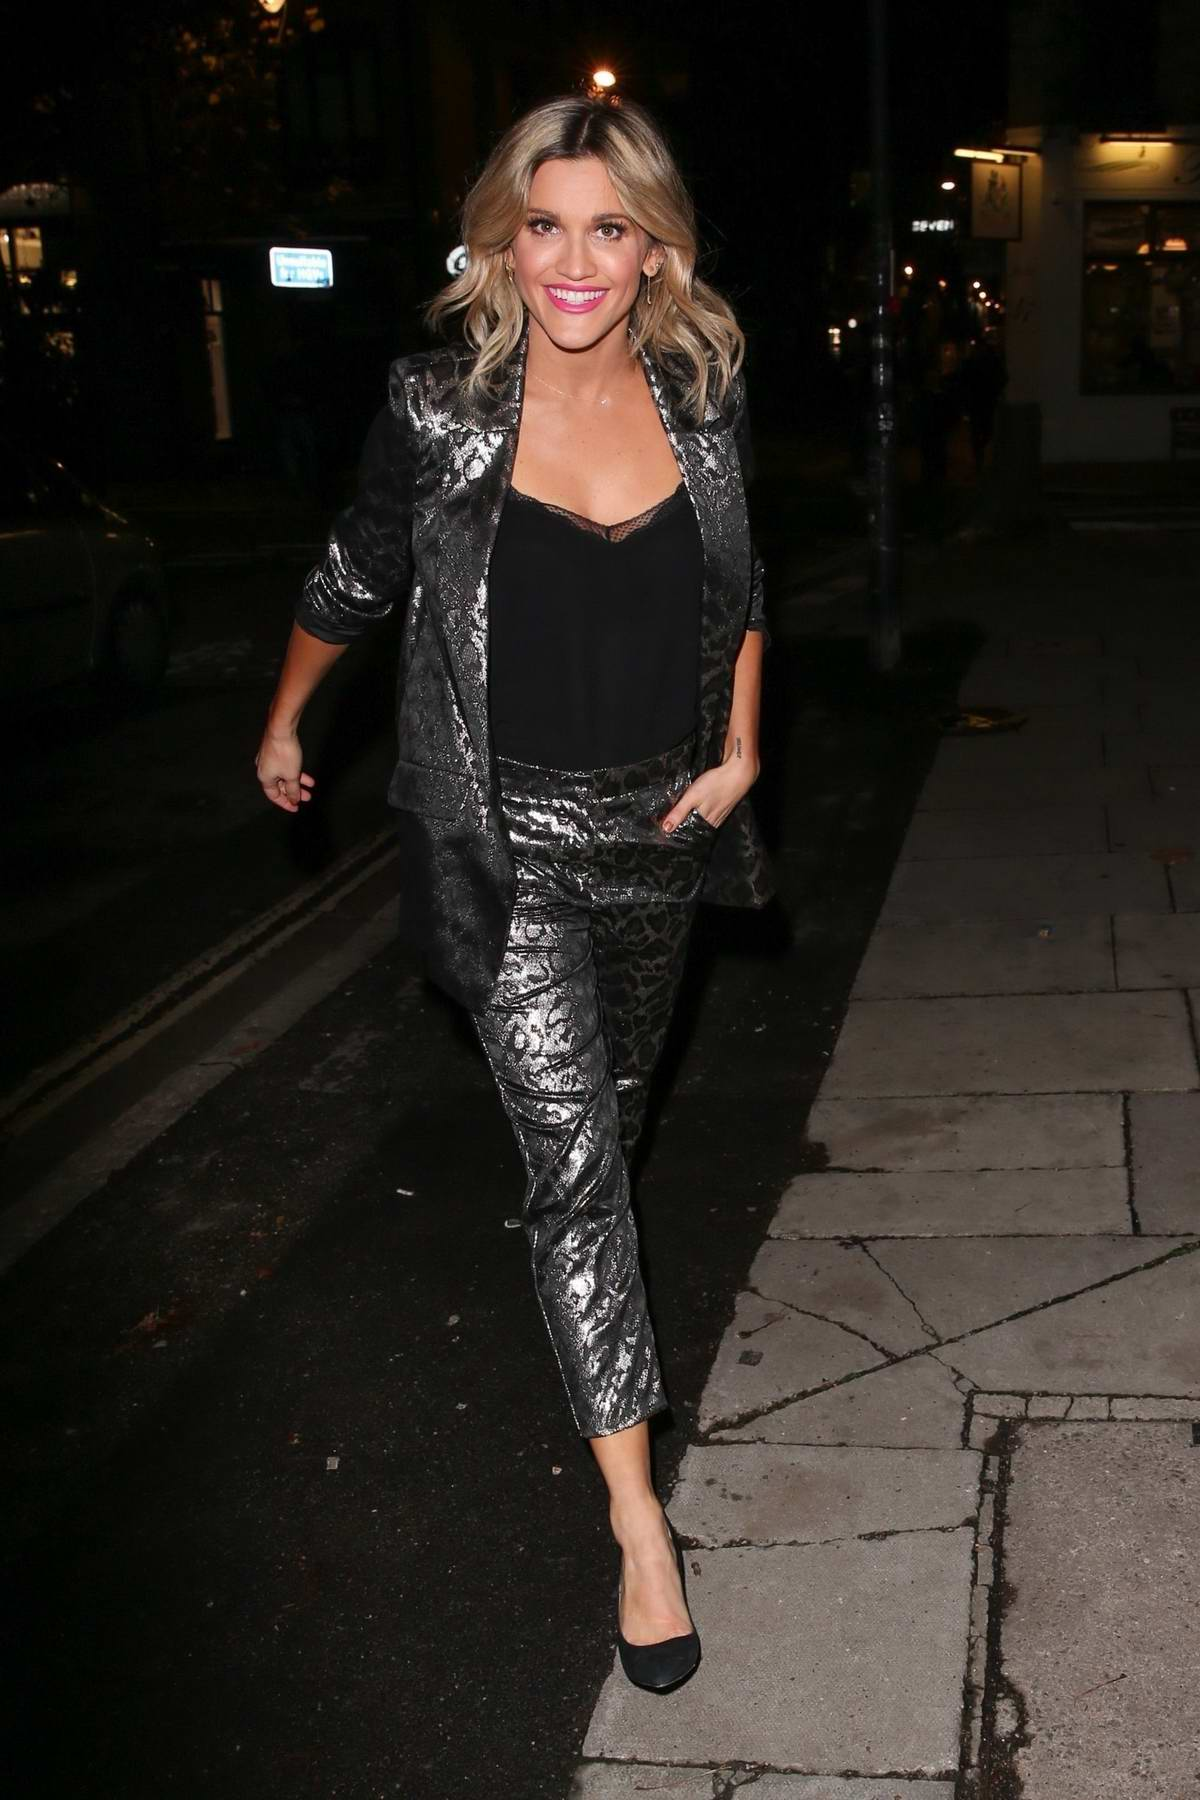 Ashley Roberts is all smiles as she leaves a TV studio in London, UK